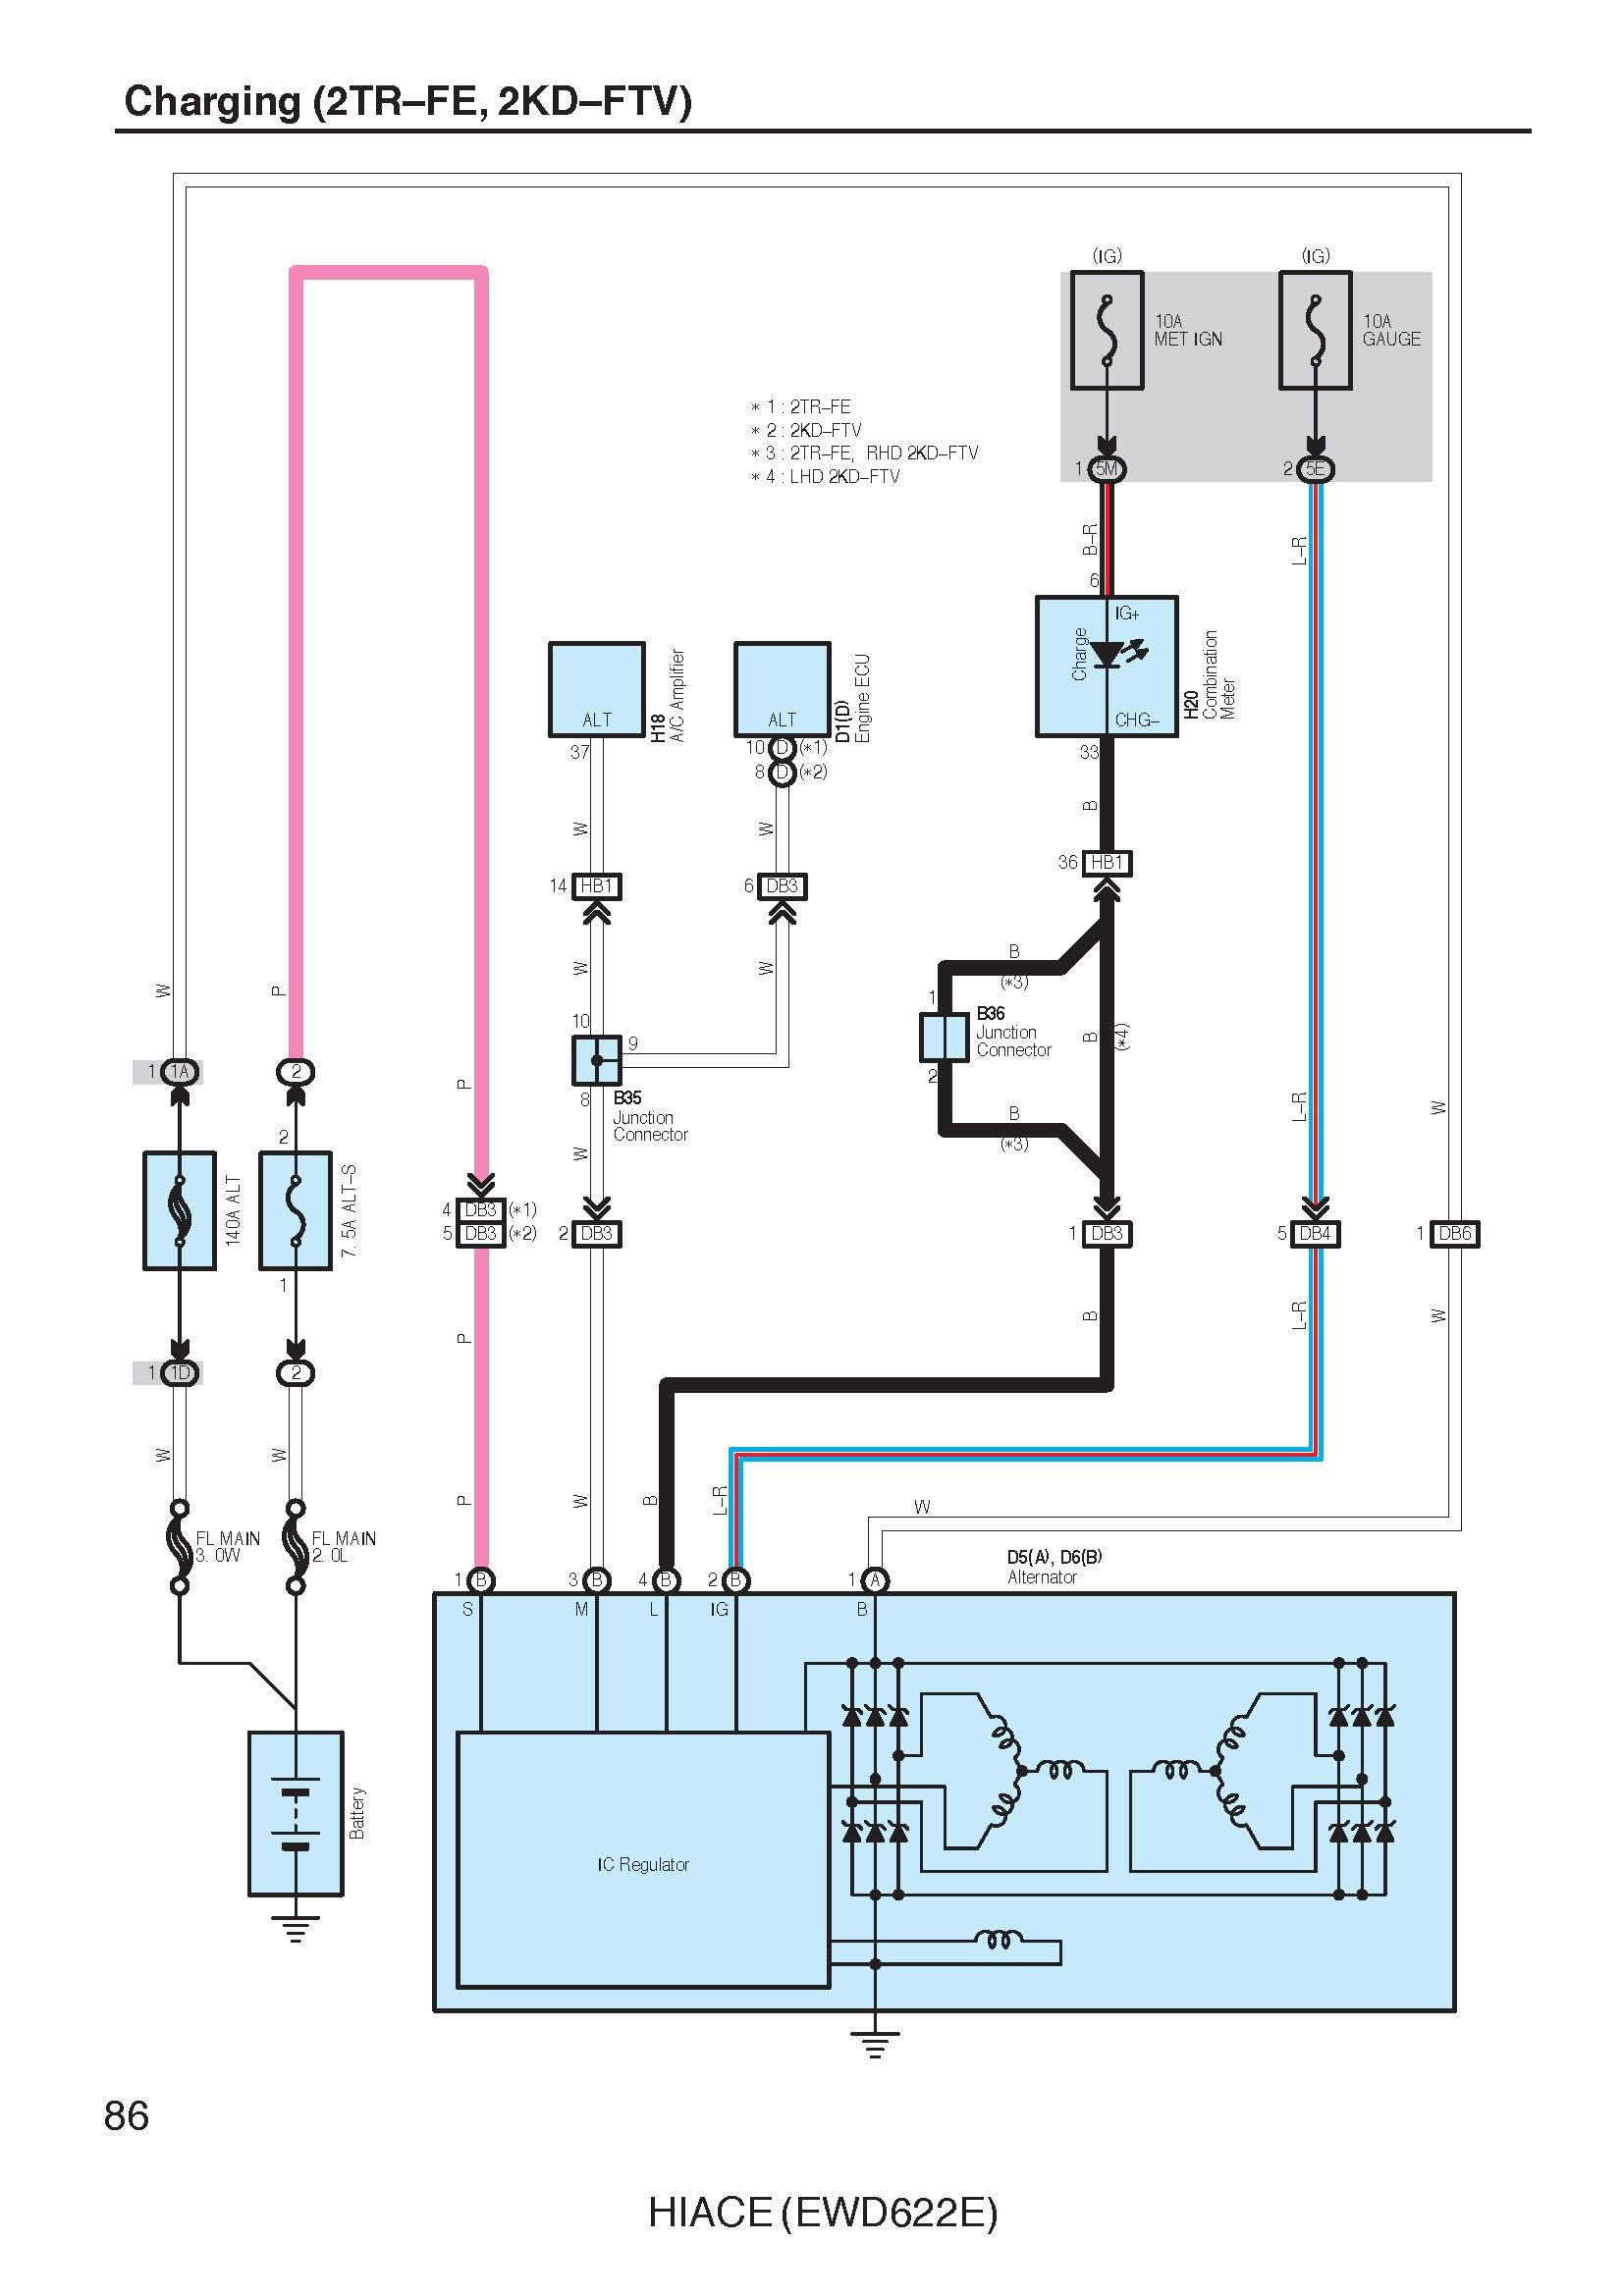 wiring diagrams pdf wiring diagram data rh 11 17 8 reisen fuer meister de